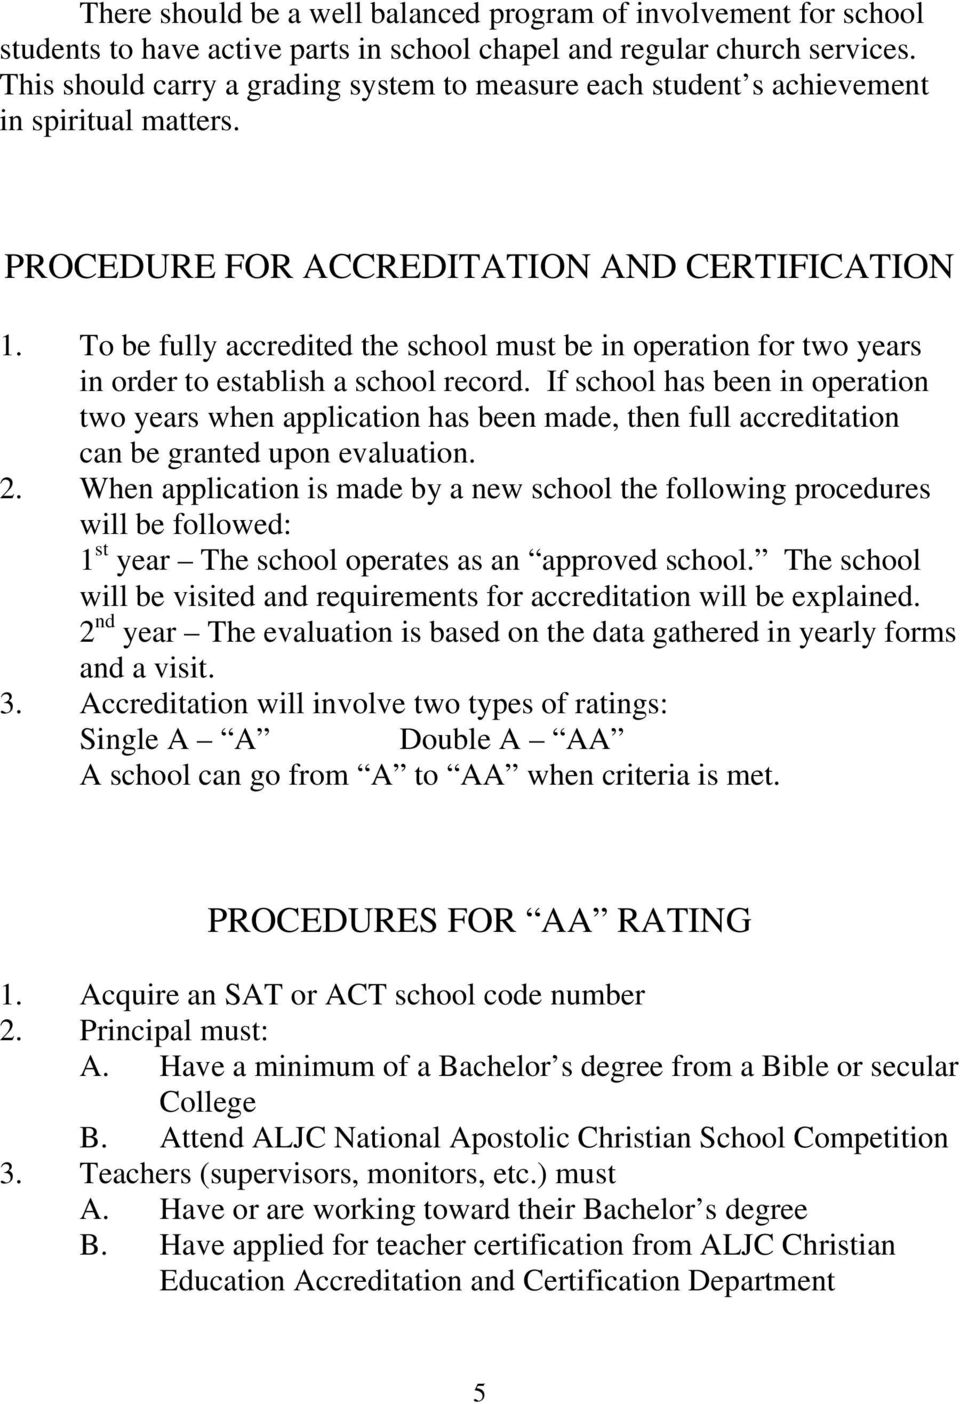 To be fully accredited the school must be in operation for two years in order to establish a school record.